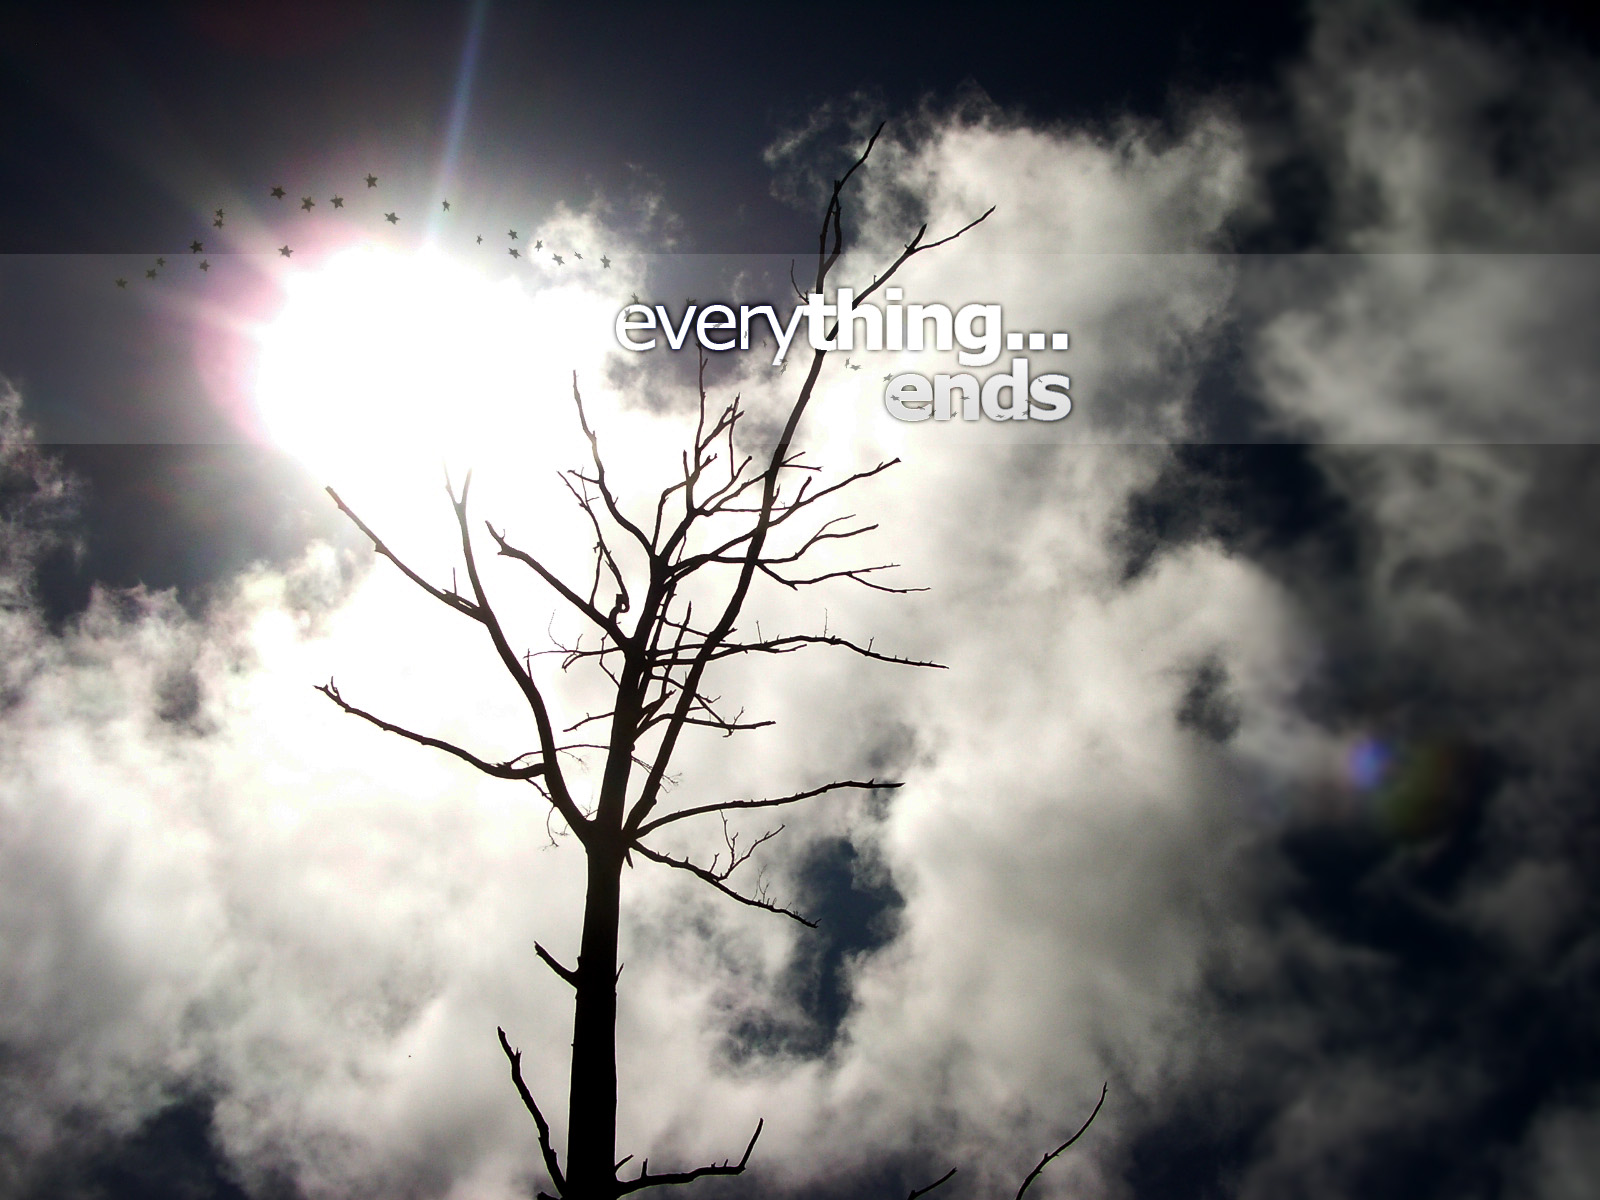 everything ends